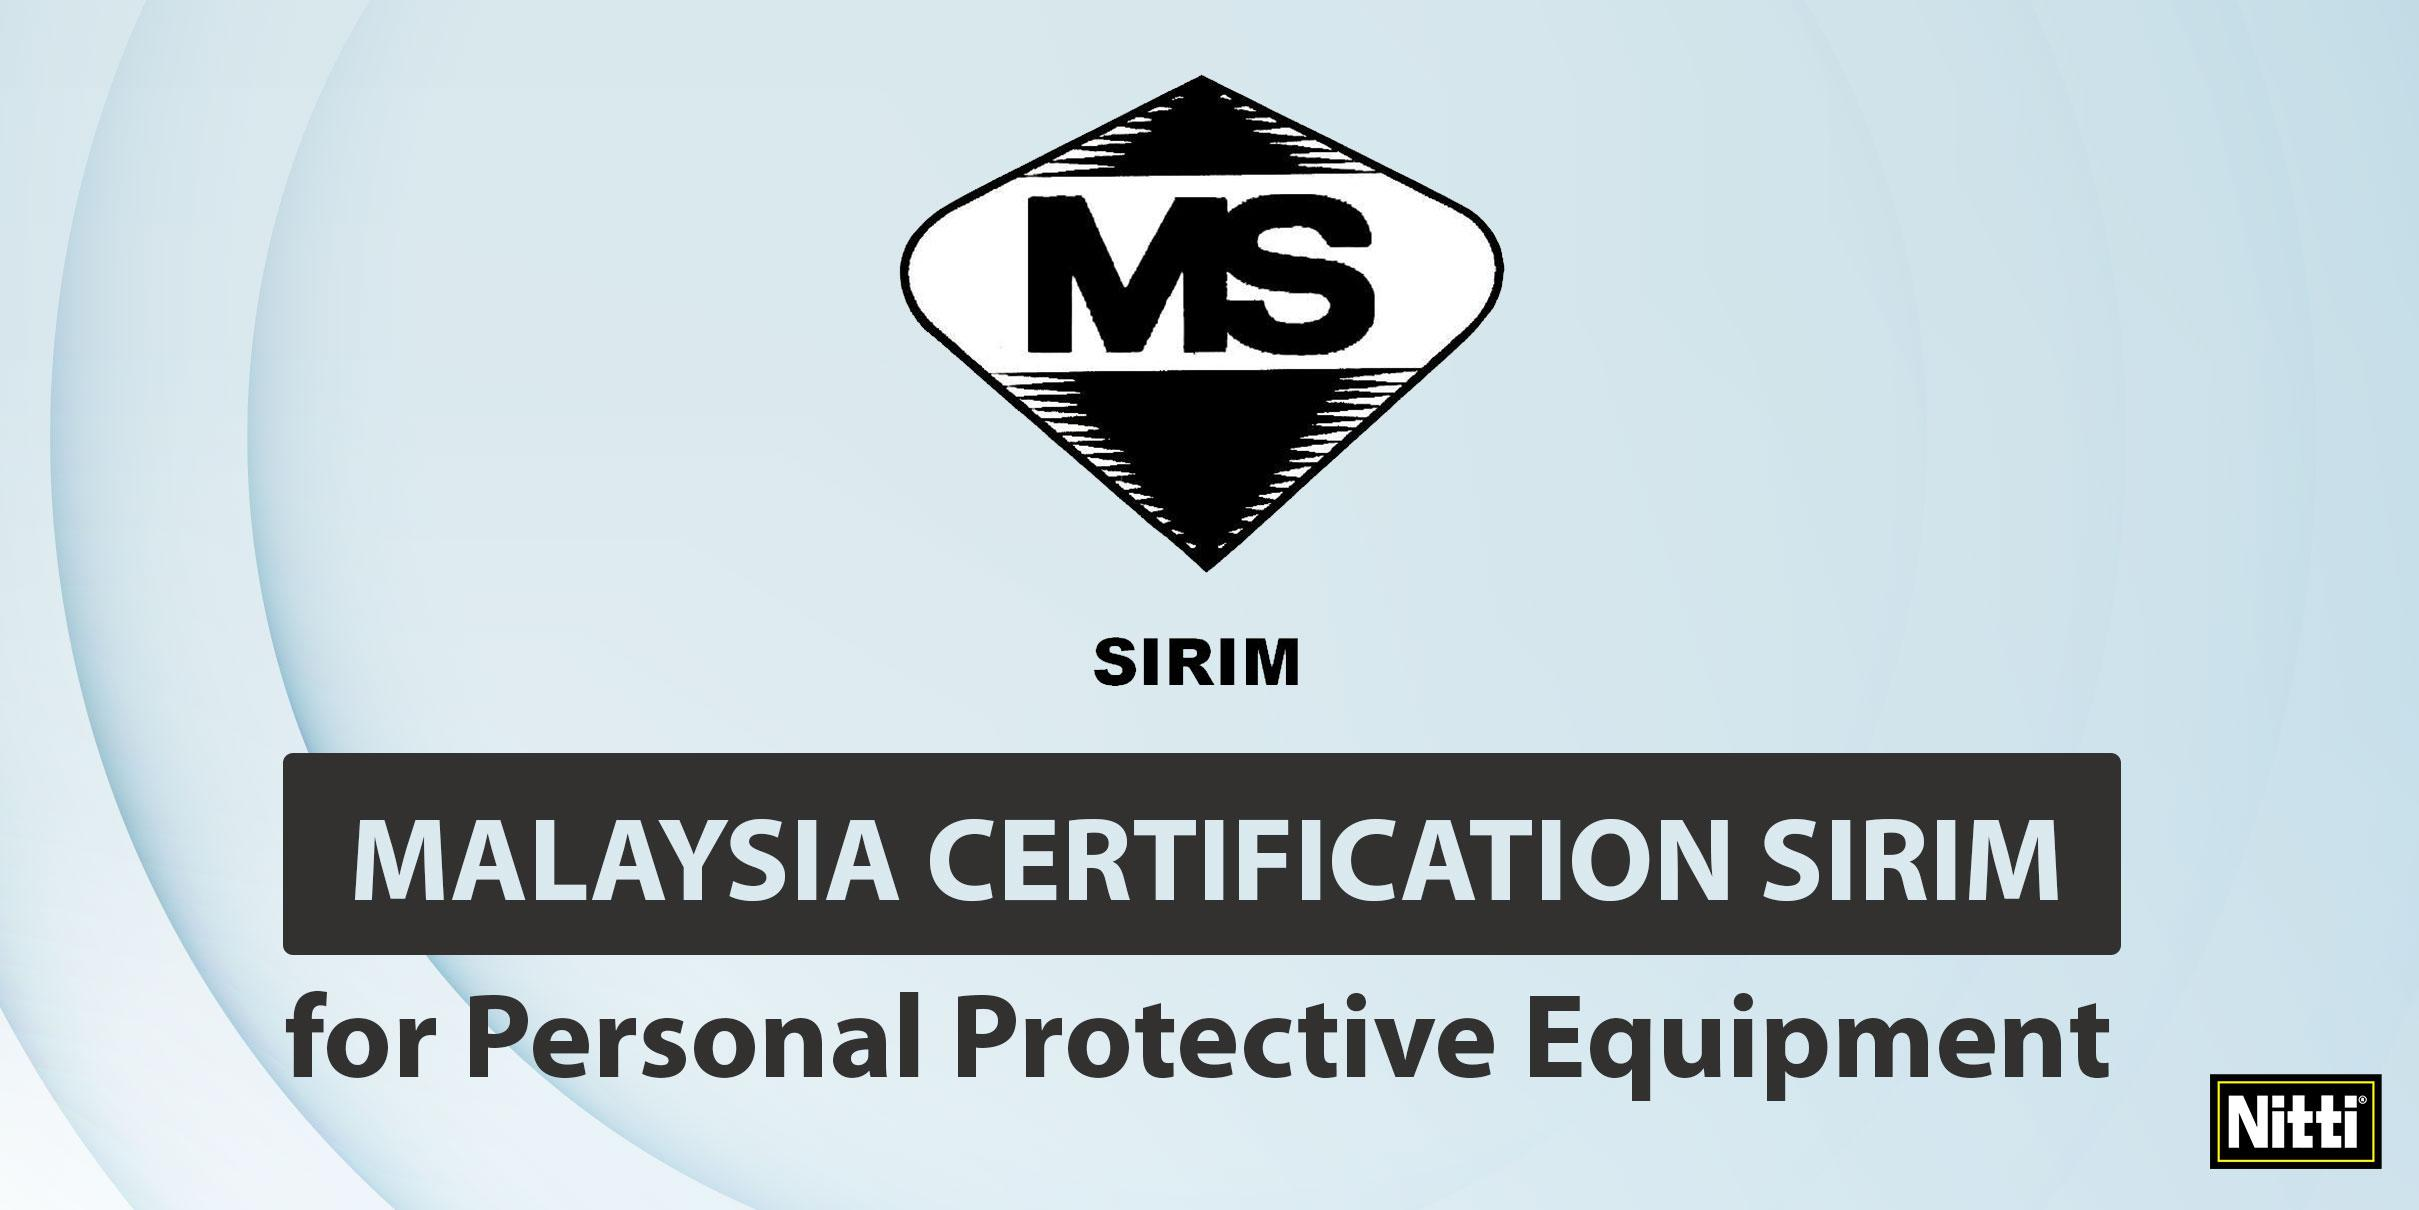 Malaysia certification SIRIM for personal protective equipment